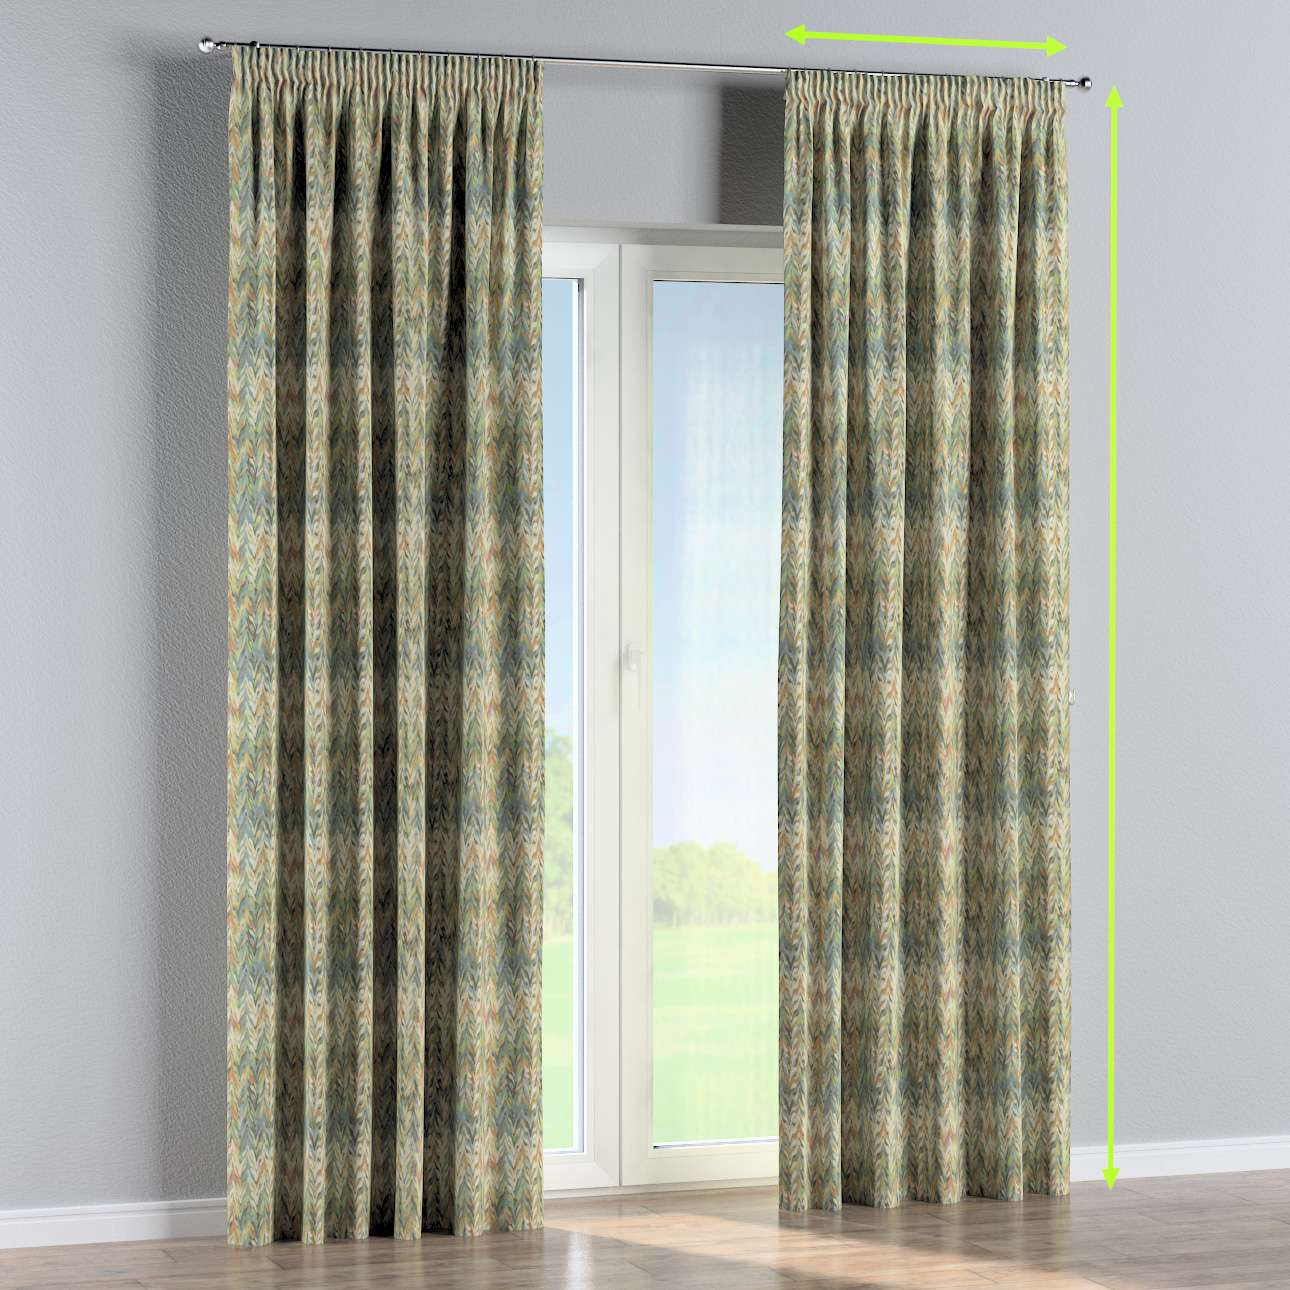 Pencil pleat curtain in collection SALE, fabric: 142-67